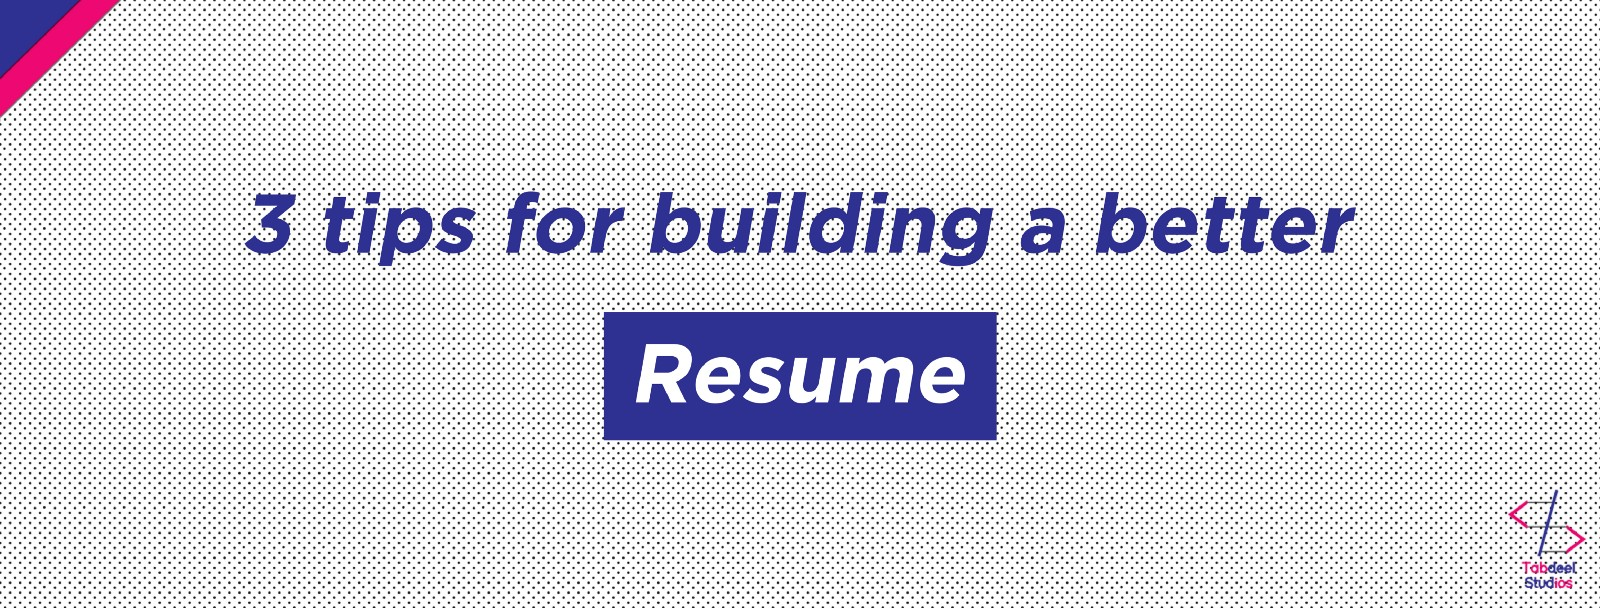 It Is Crucial To Ensure That Our Resume Reflects Who We Are Make A Good First Impression